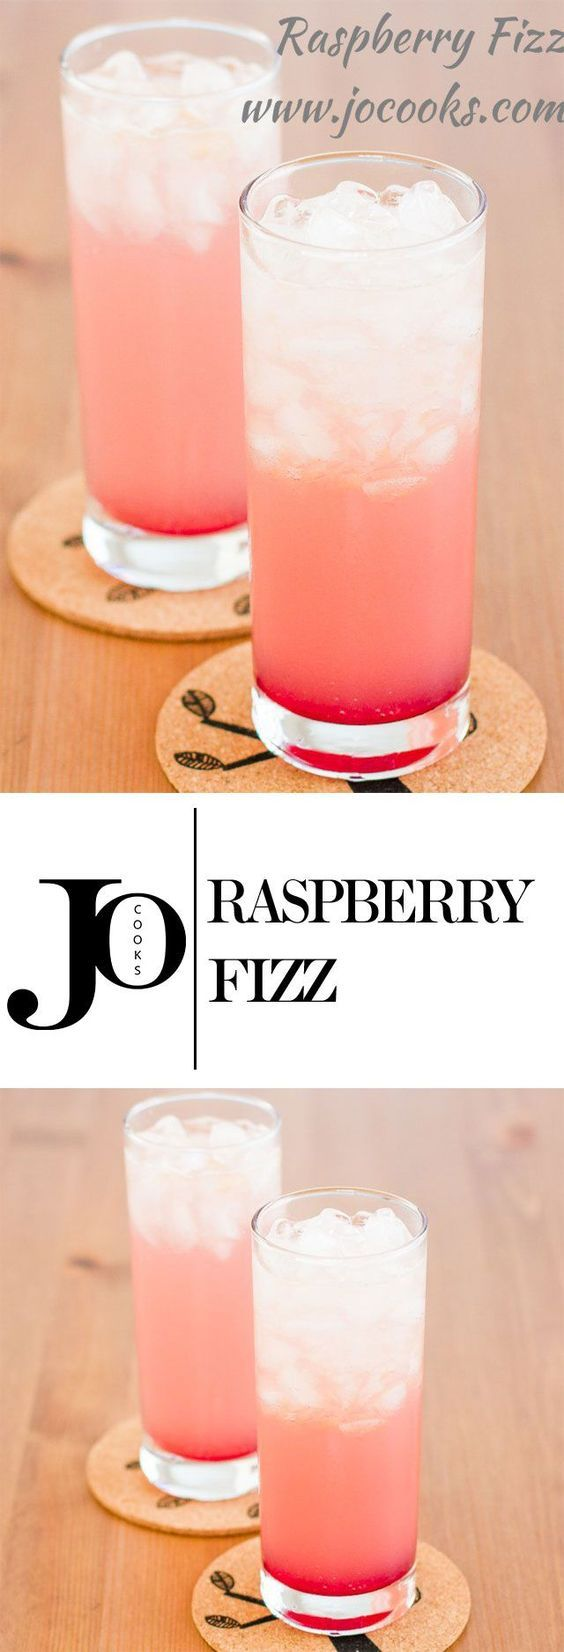 The BEST Easy Non-Alcoholic Drinks Recipes – Creative Mocktails and Family Friendly, Alcohol-Free, Big Batch Party Beverages for a Crowd!